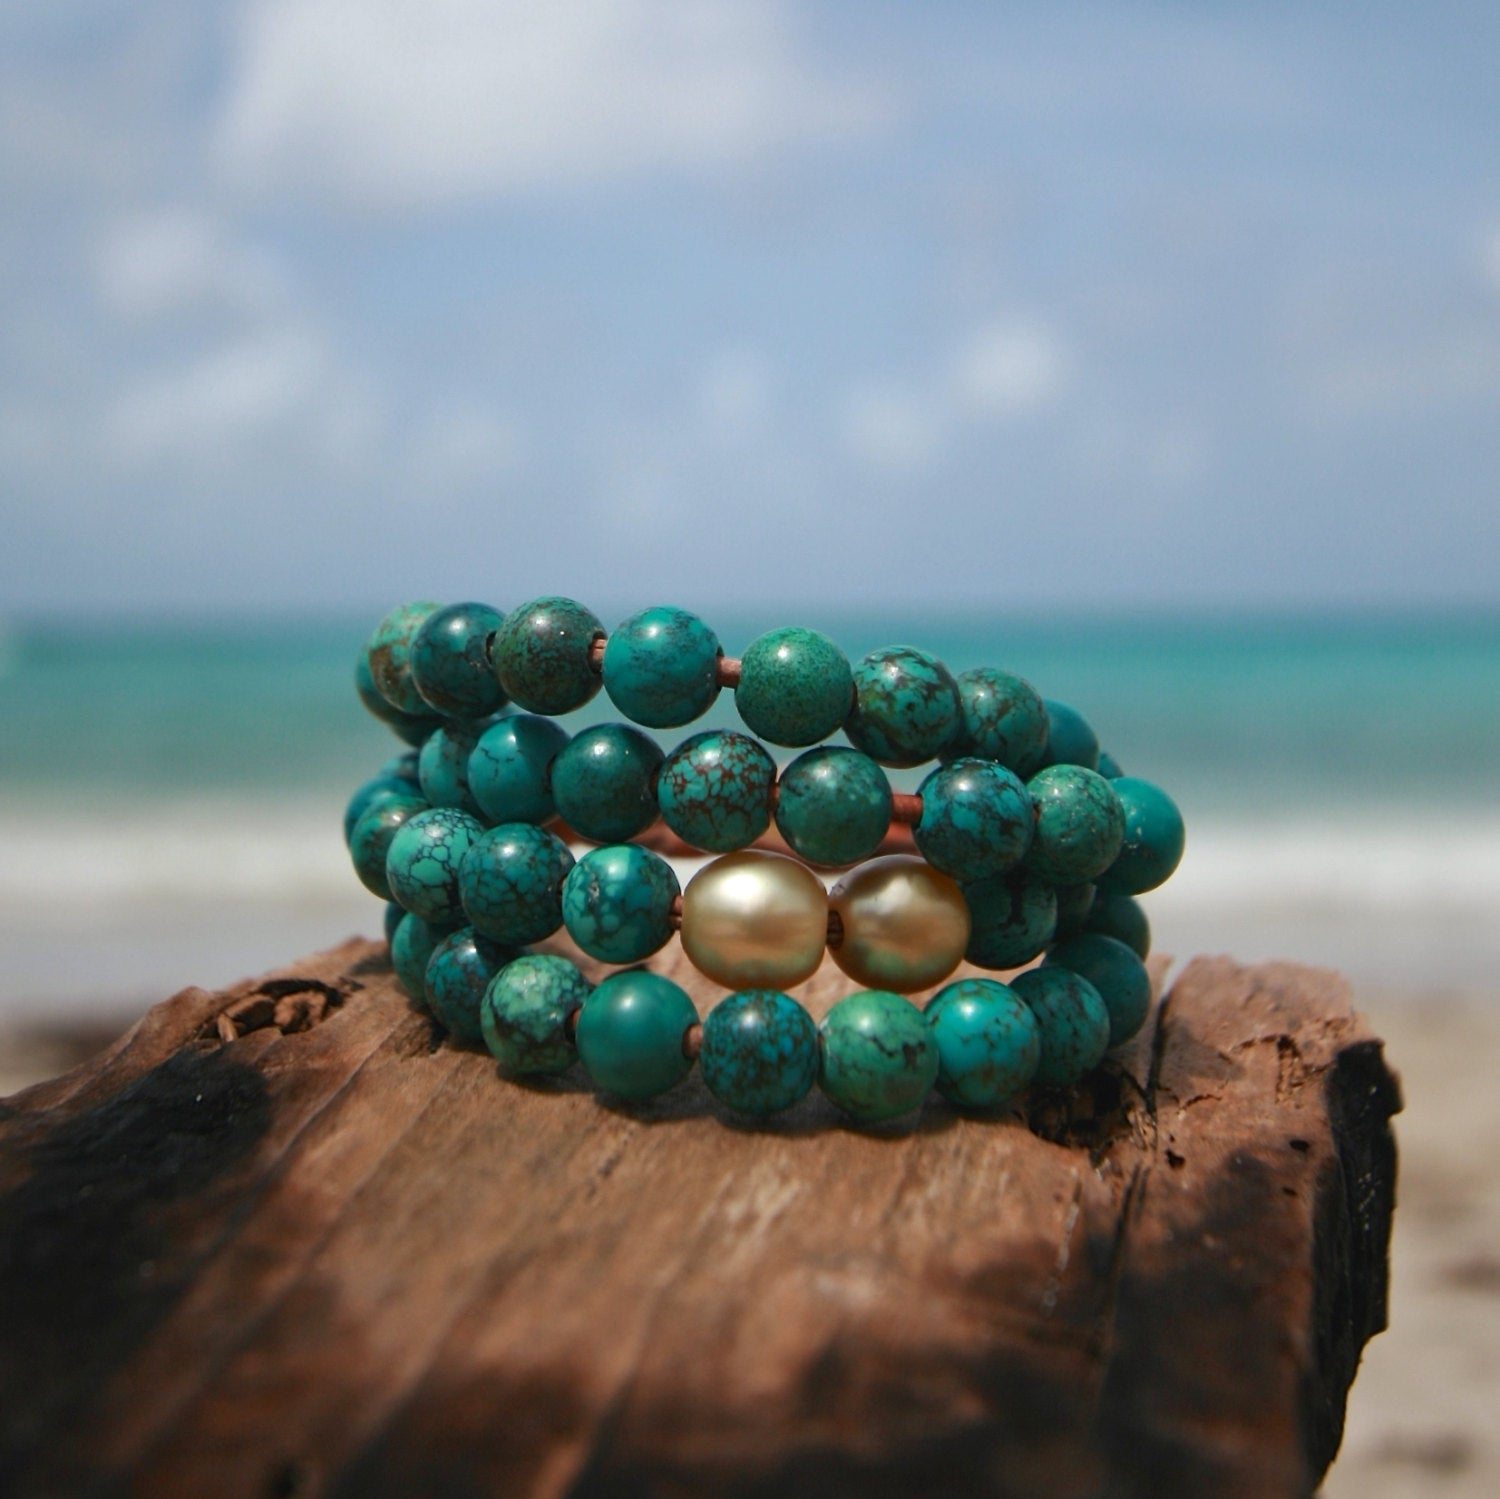 St barth jewelry pearls bracelet